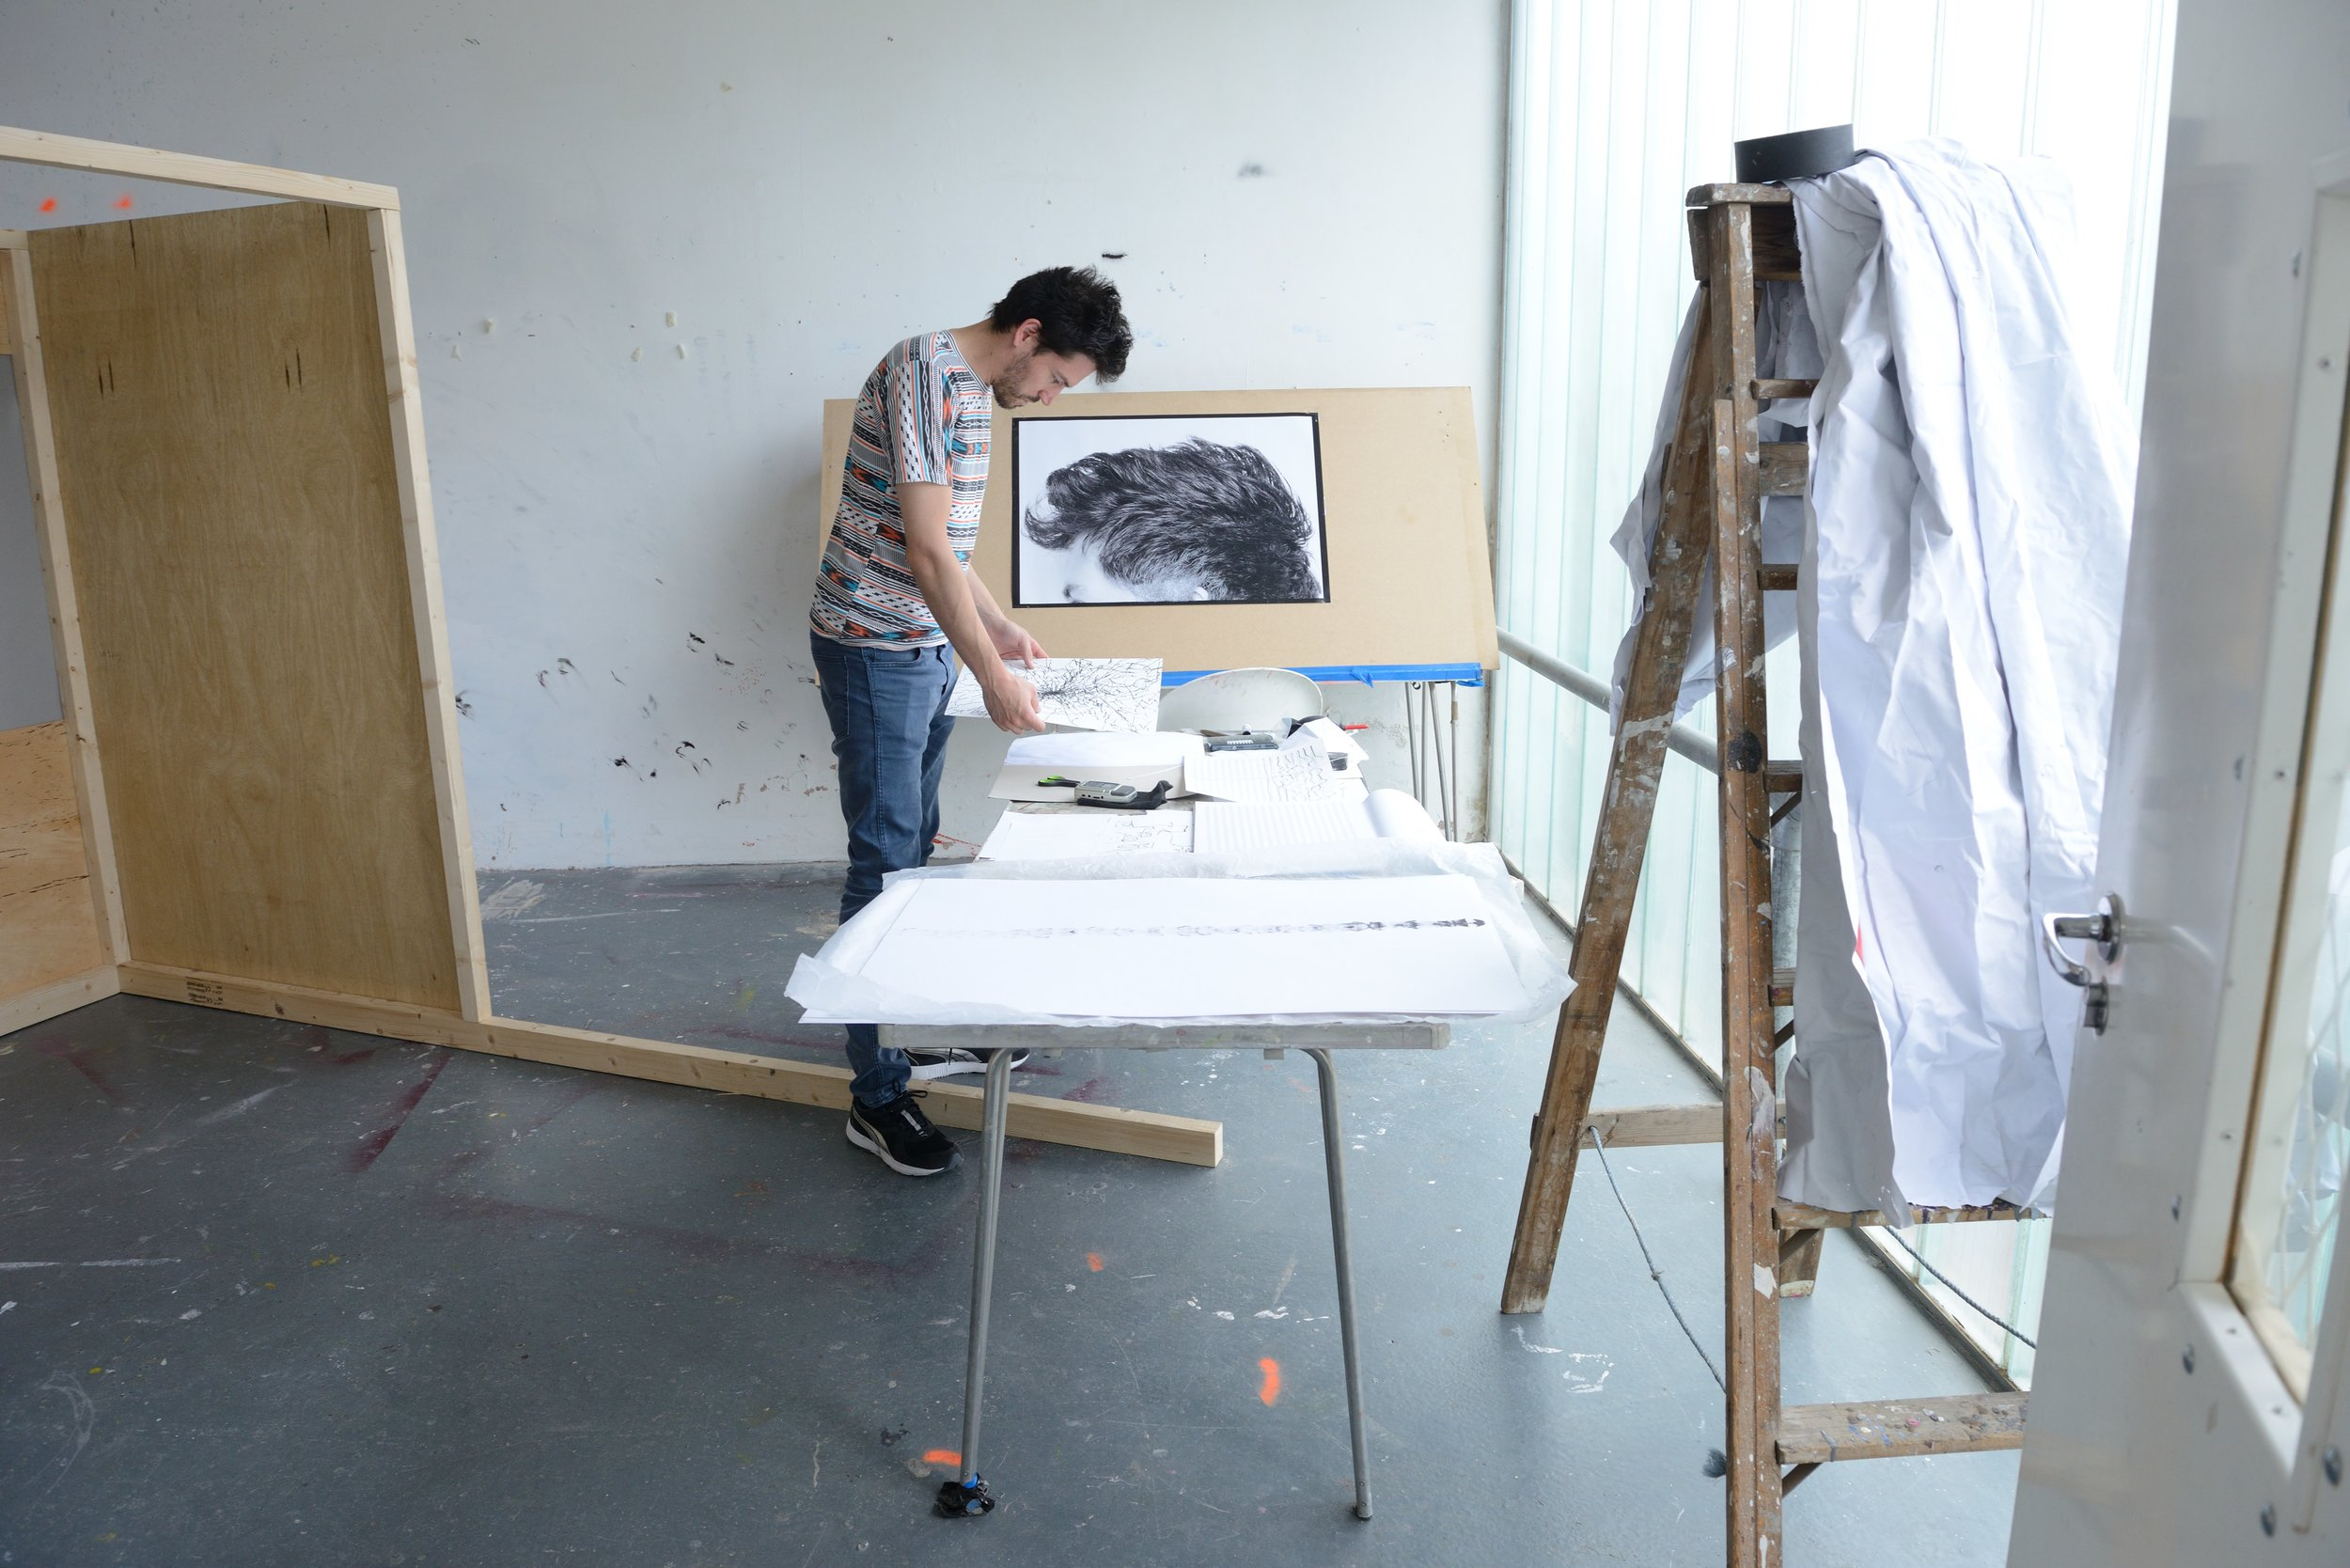 William Mackrell in the Sculpture Shock Studio, photo by AK Purkiss